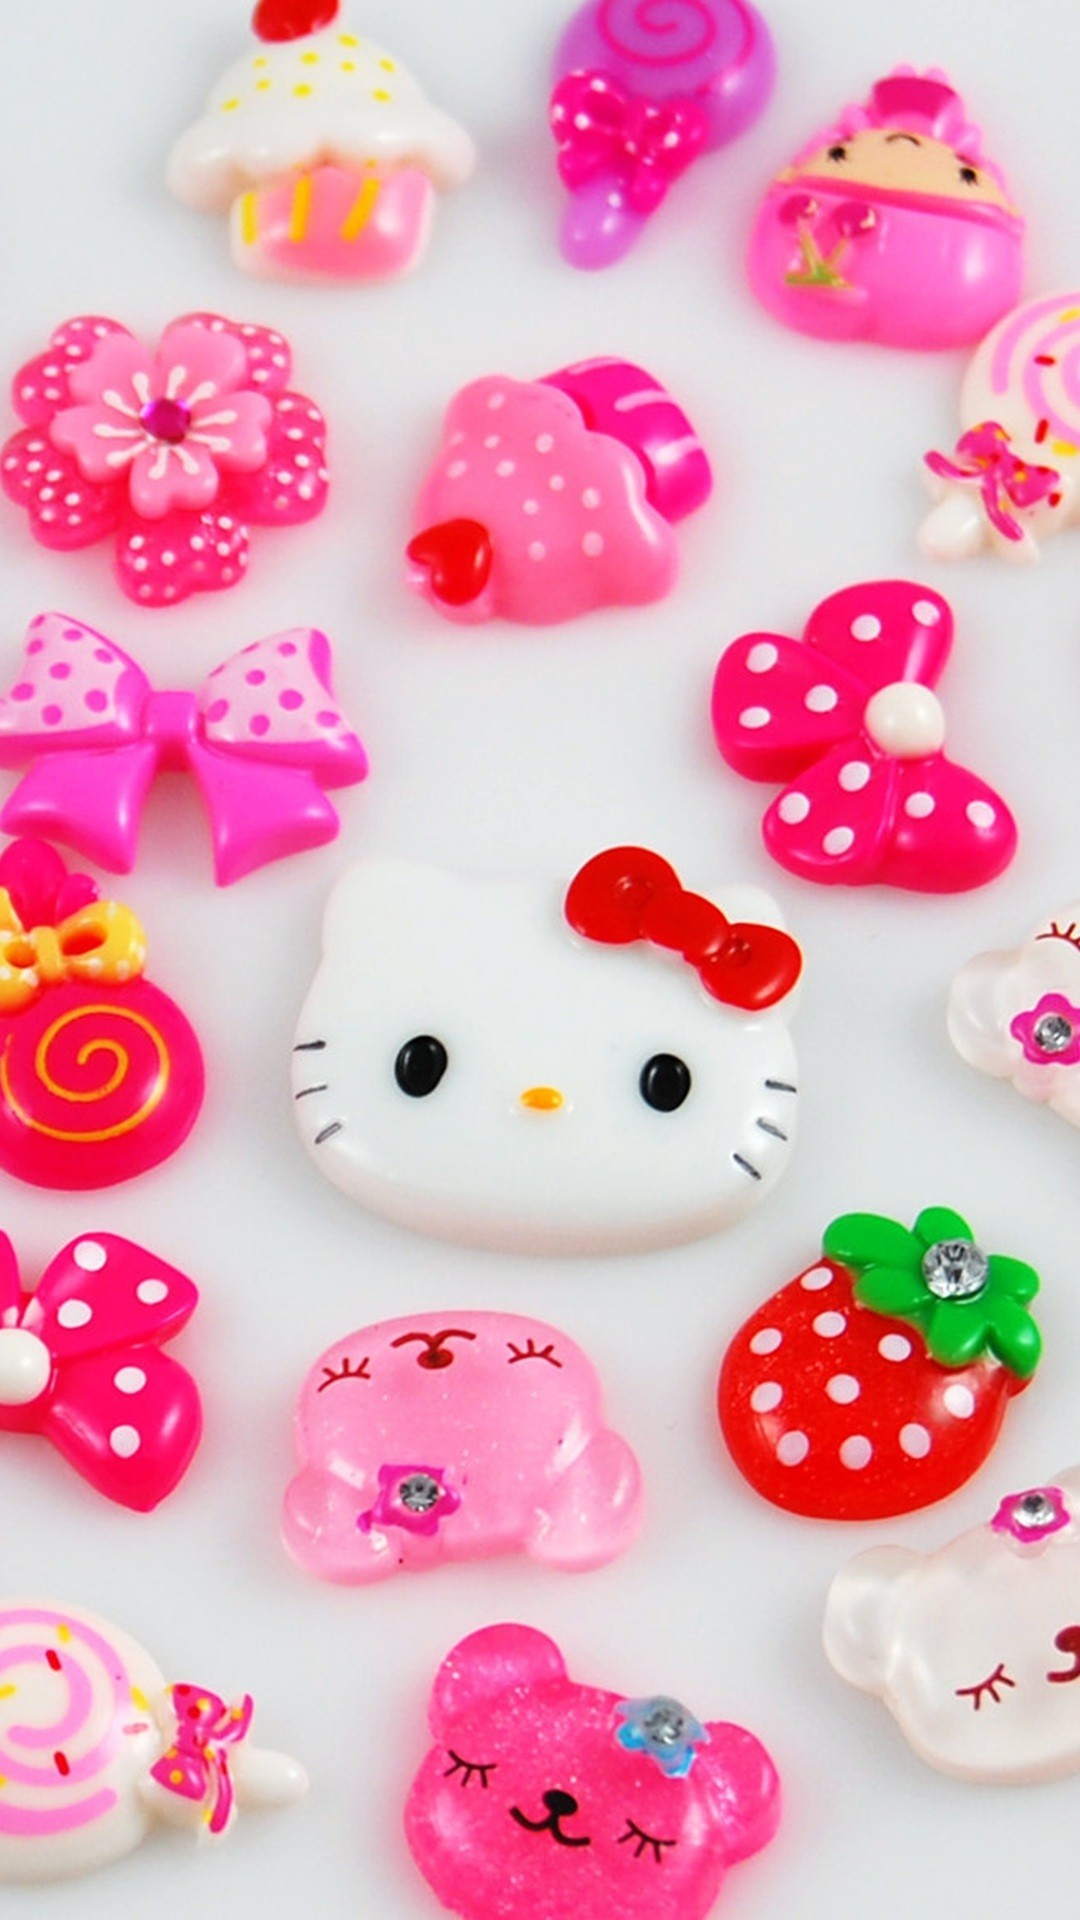 Cute Ipod Wallpapers For Walls Hello Kitty Wallpaper For Iphone 72 Images